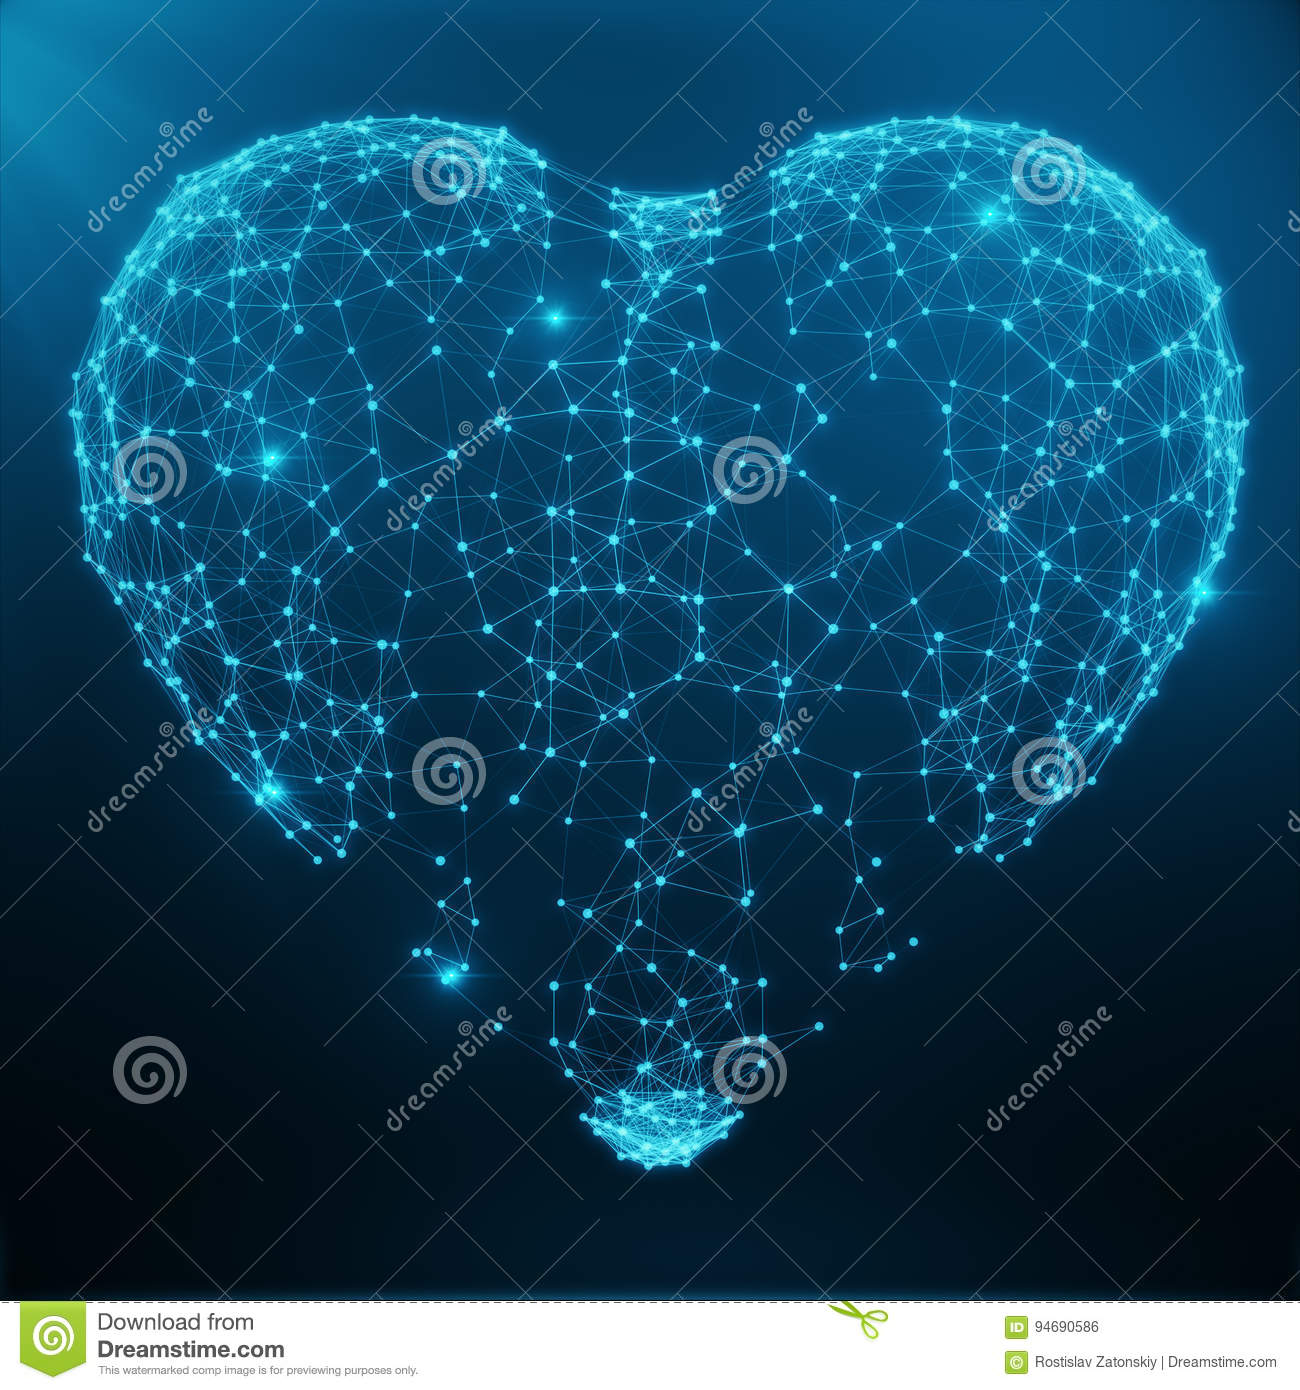 Polygonal Abstract Heart Concept Consisting of Blue Dots and Lines. Digital Illustration. Polygonal Structure, Triangle